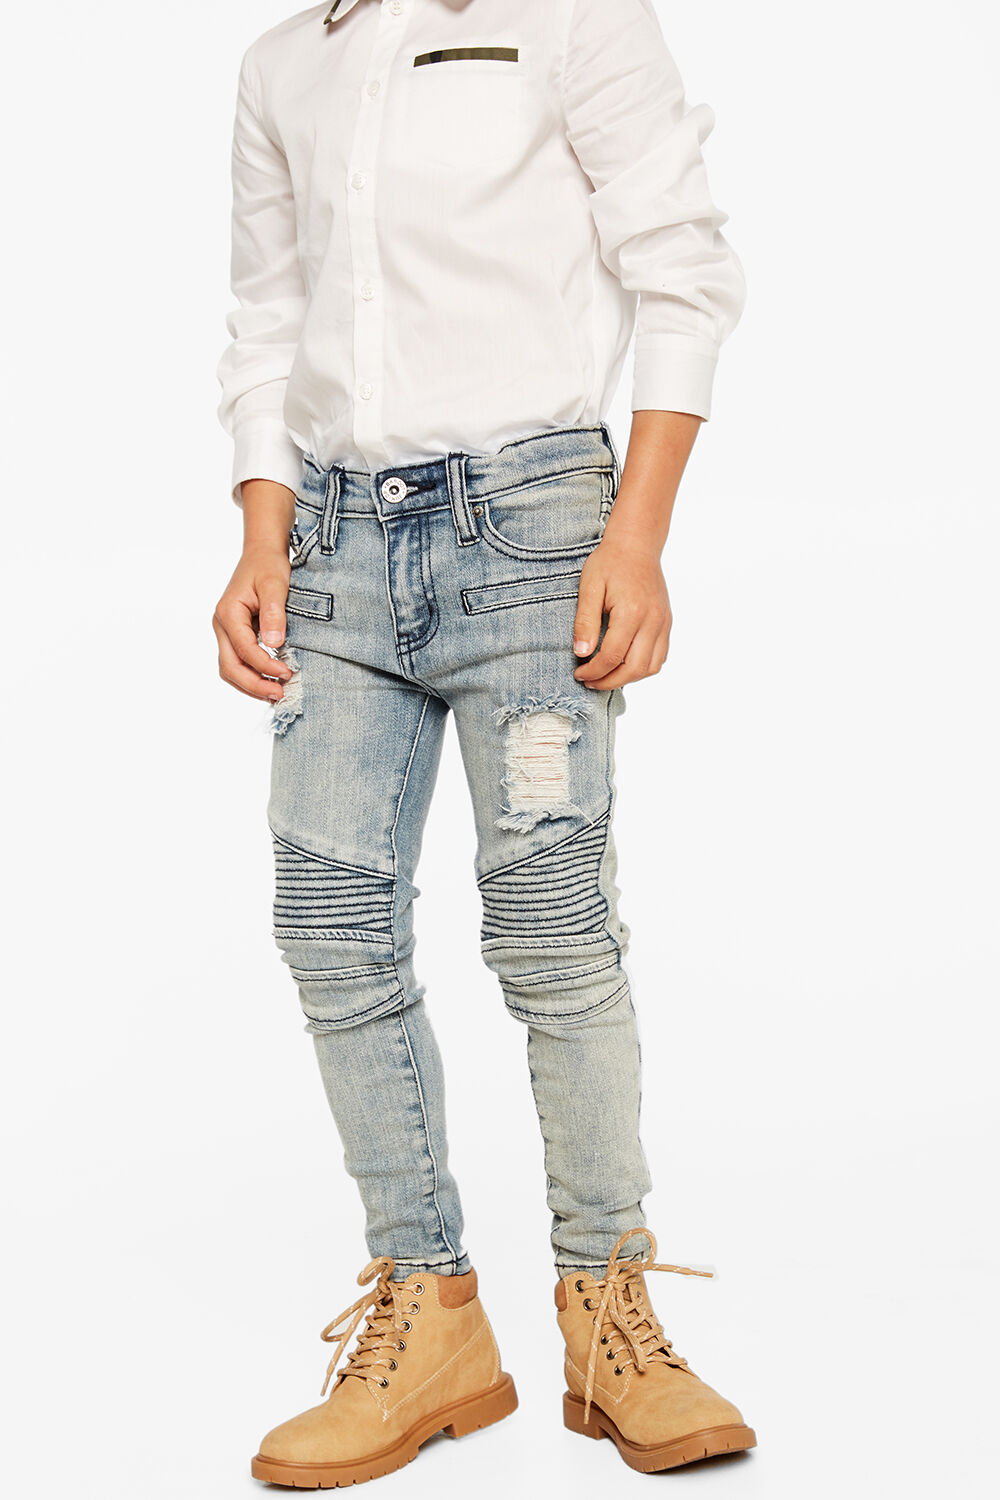 OLI ZIP JEAN in colour CITADEL